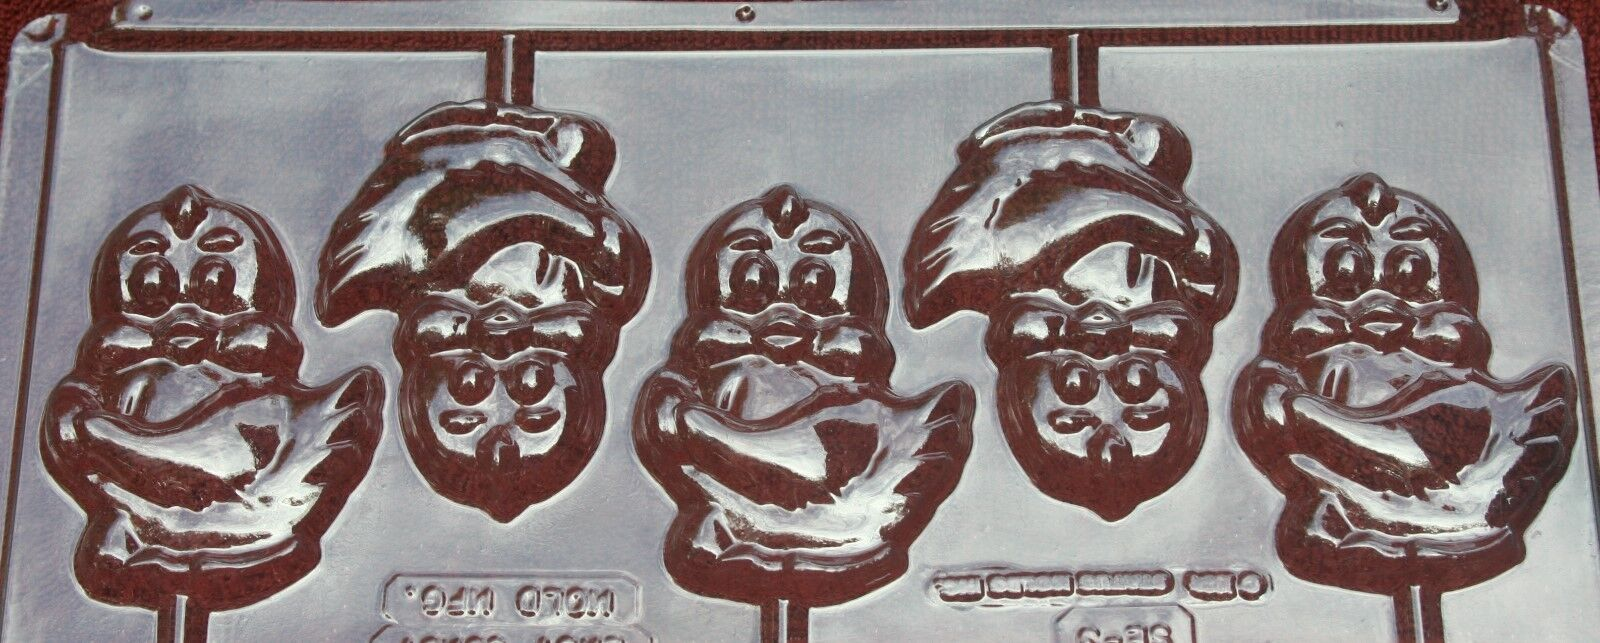 CHICKS LOLLIPOP CHOCOLATE CANDY MOLD MOLDS DIY EASTER PARTY